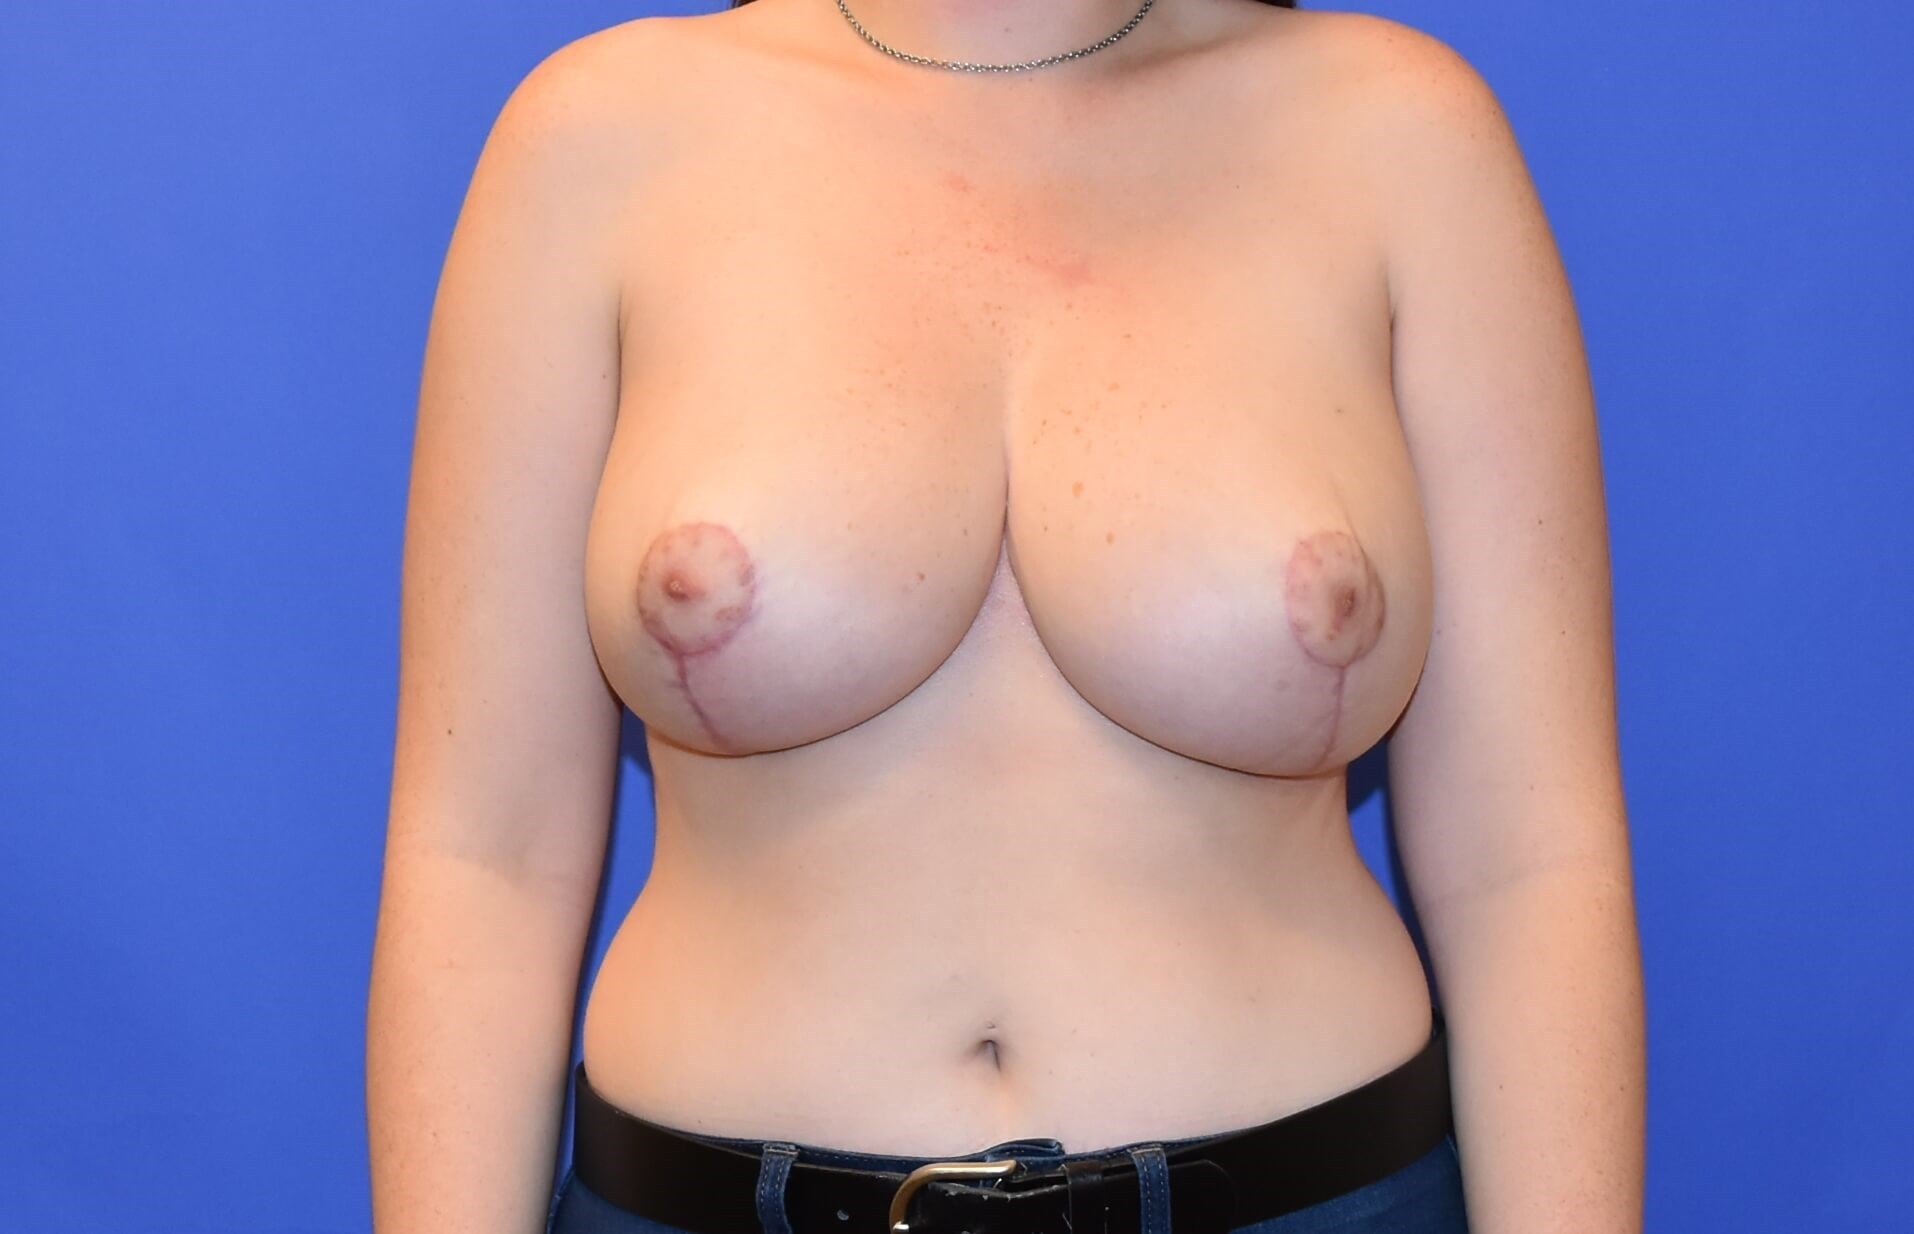 Breast Reduction Houston After 3 months